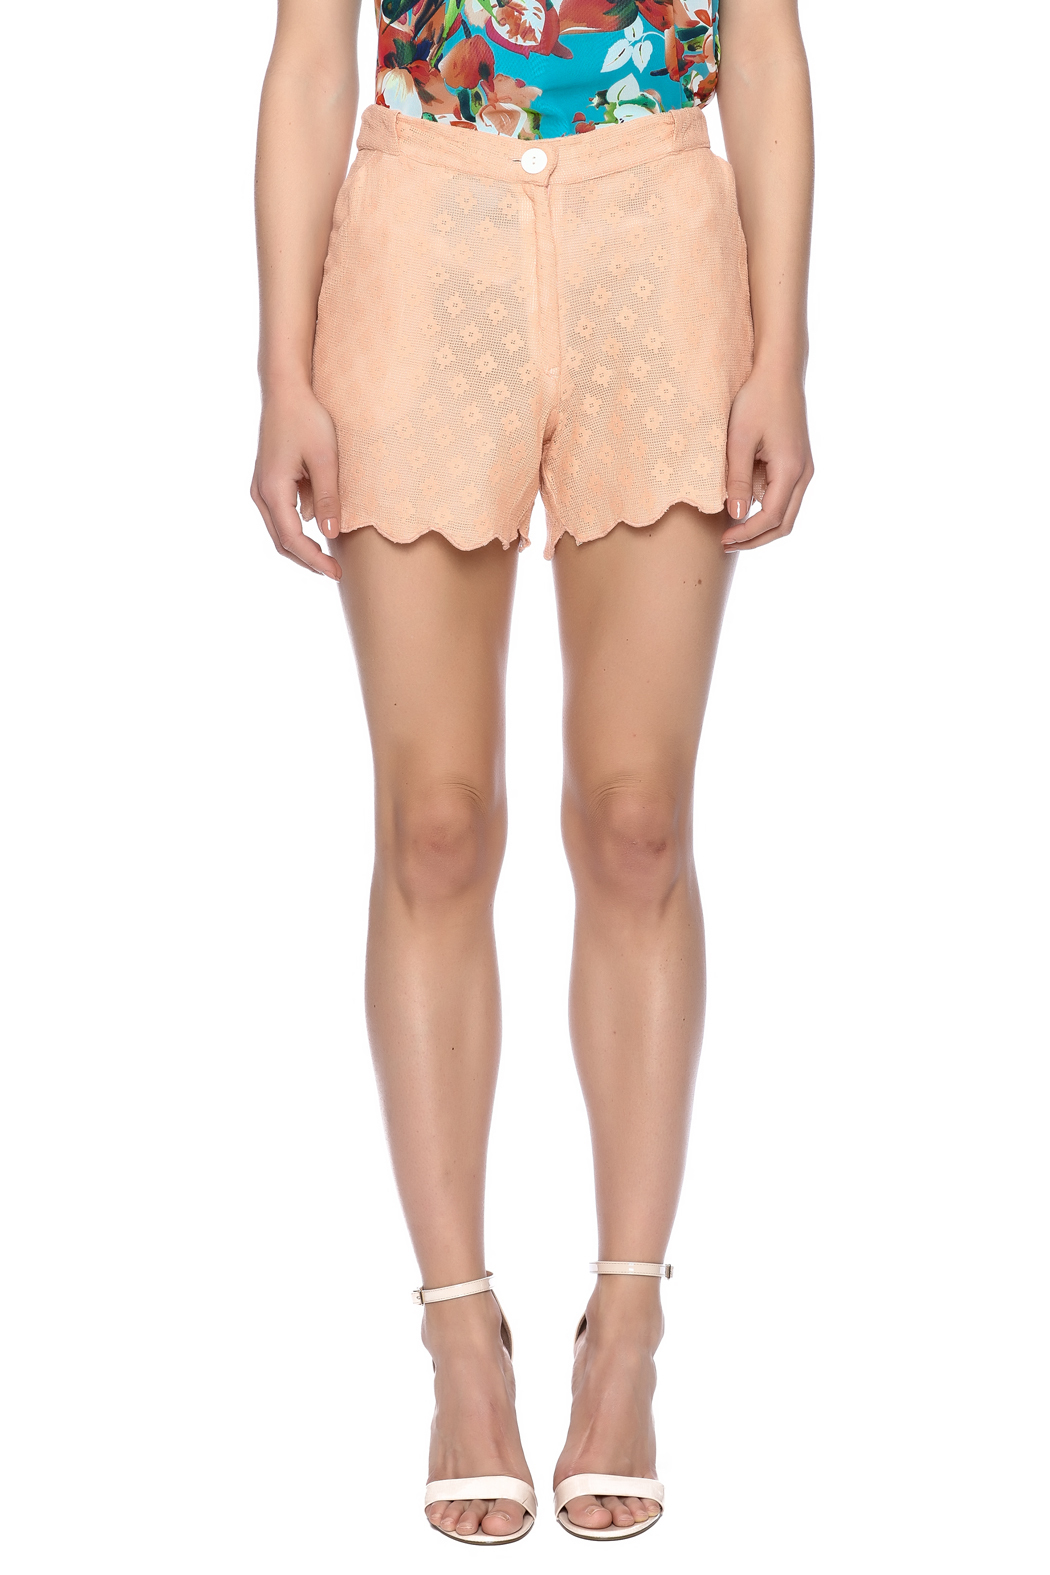 Z&L Europe Peach Lace Shorts - Side Cropped Image